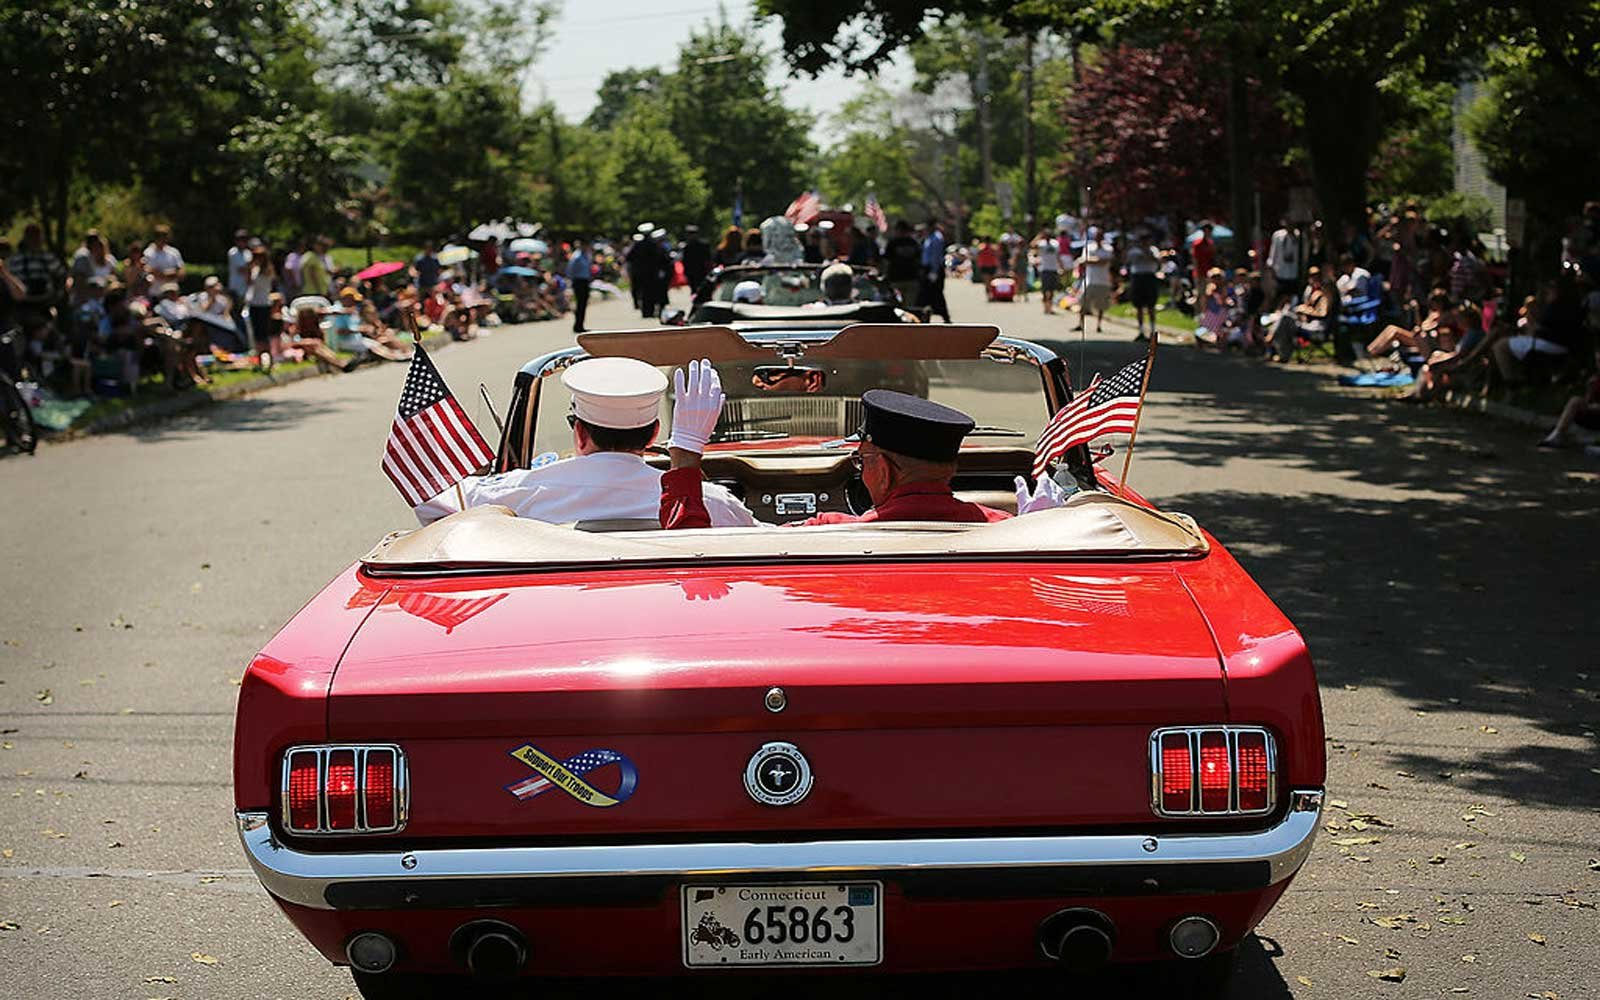 FAIRFIELD, CT - MAY 28:  Two firefighters ride in a convertible during the annual Memorial Day Parade on May 28, 2012 in Fairfield, Connecticut. Across America towns and cities will be celebrating veterans of the United States Armed Forces and the sacrifi